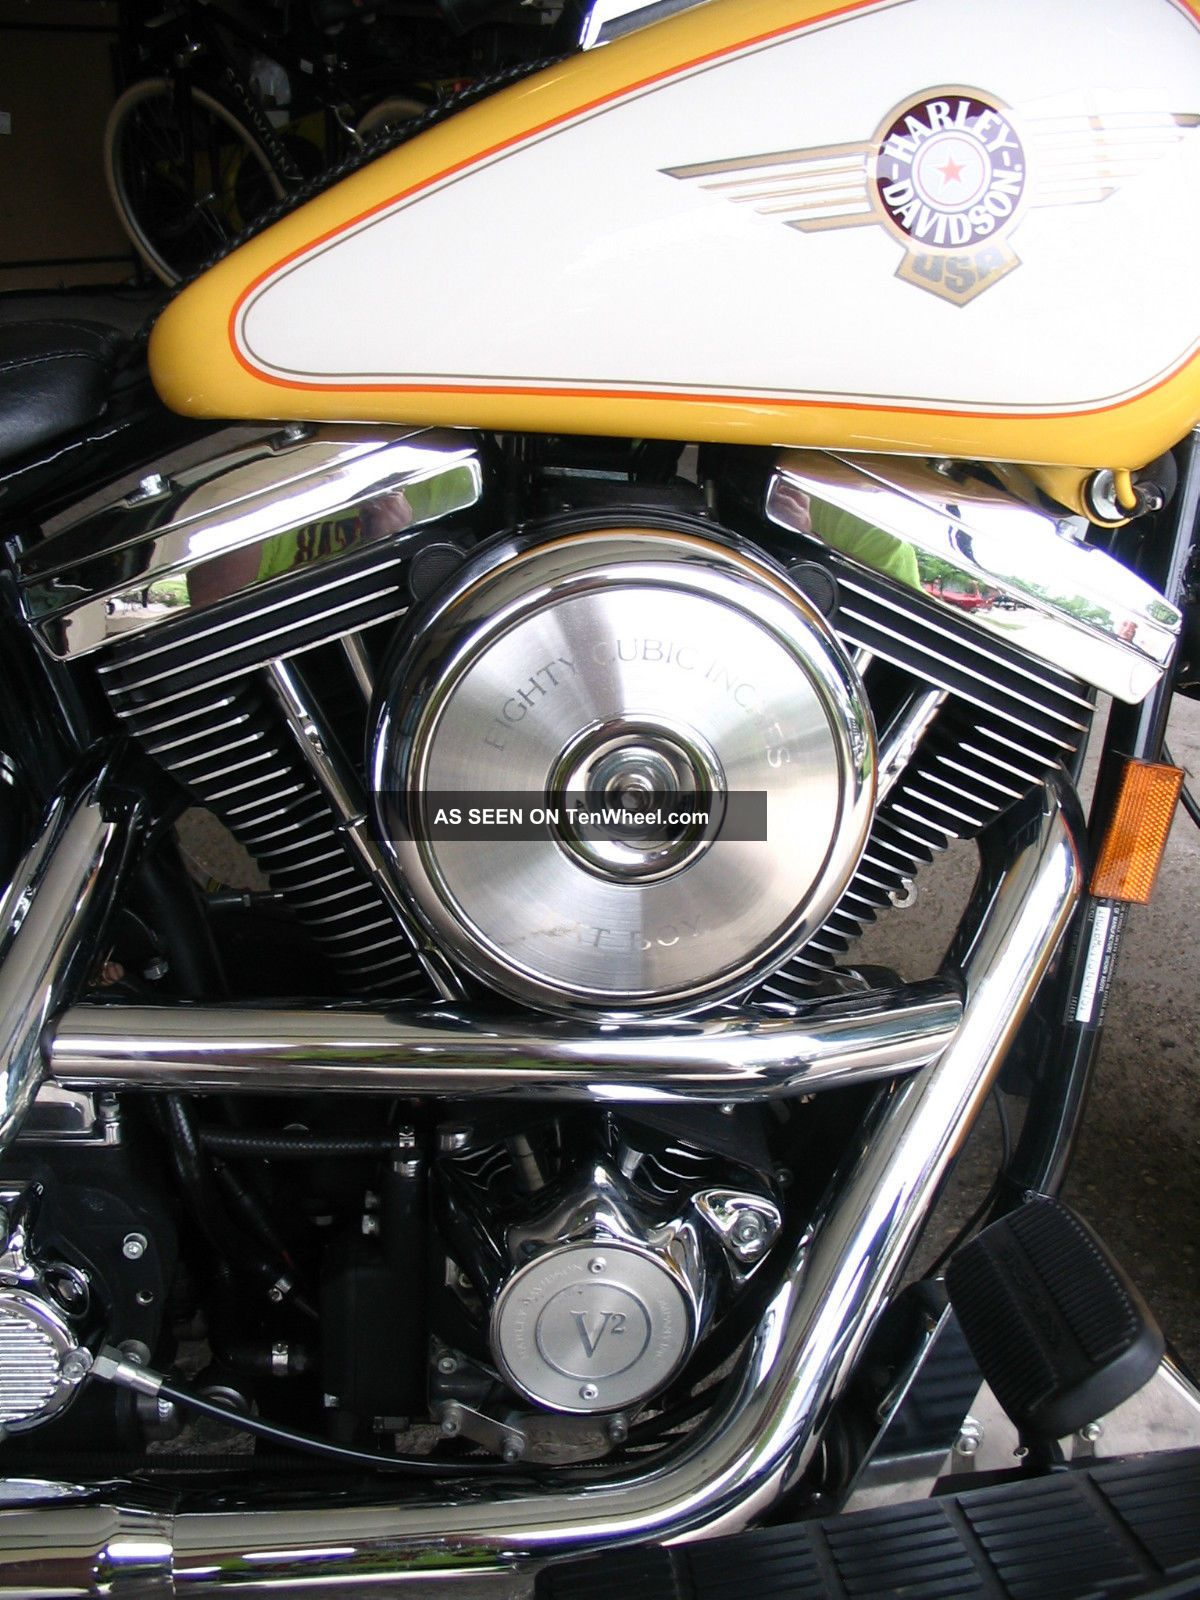 a comprehensive analysis of the motorcycles and motorcycling life of harley davidson company The history of harley davidson marketing essay swot analysis of harley-davidson harley-davidson motorcycles were in high demand during world war i.